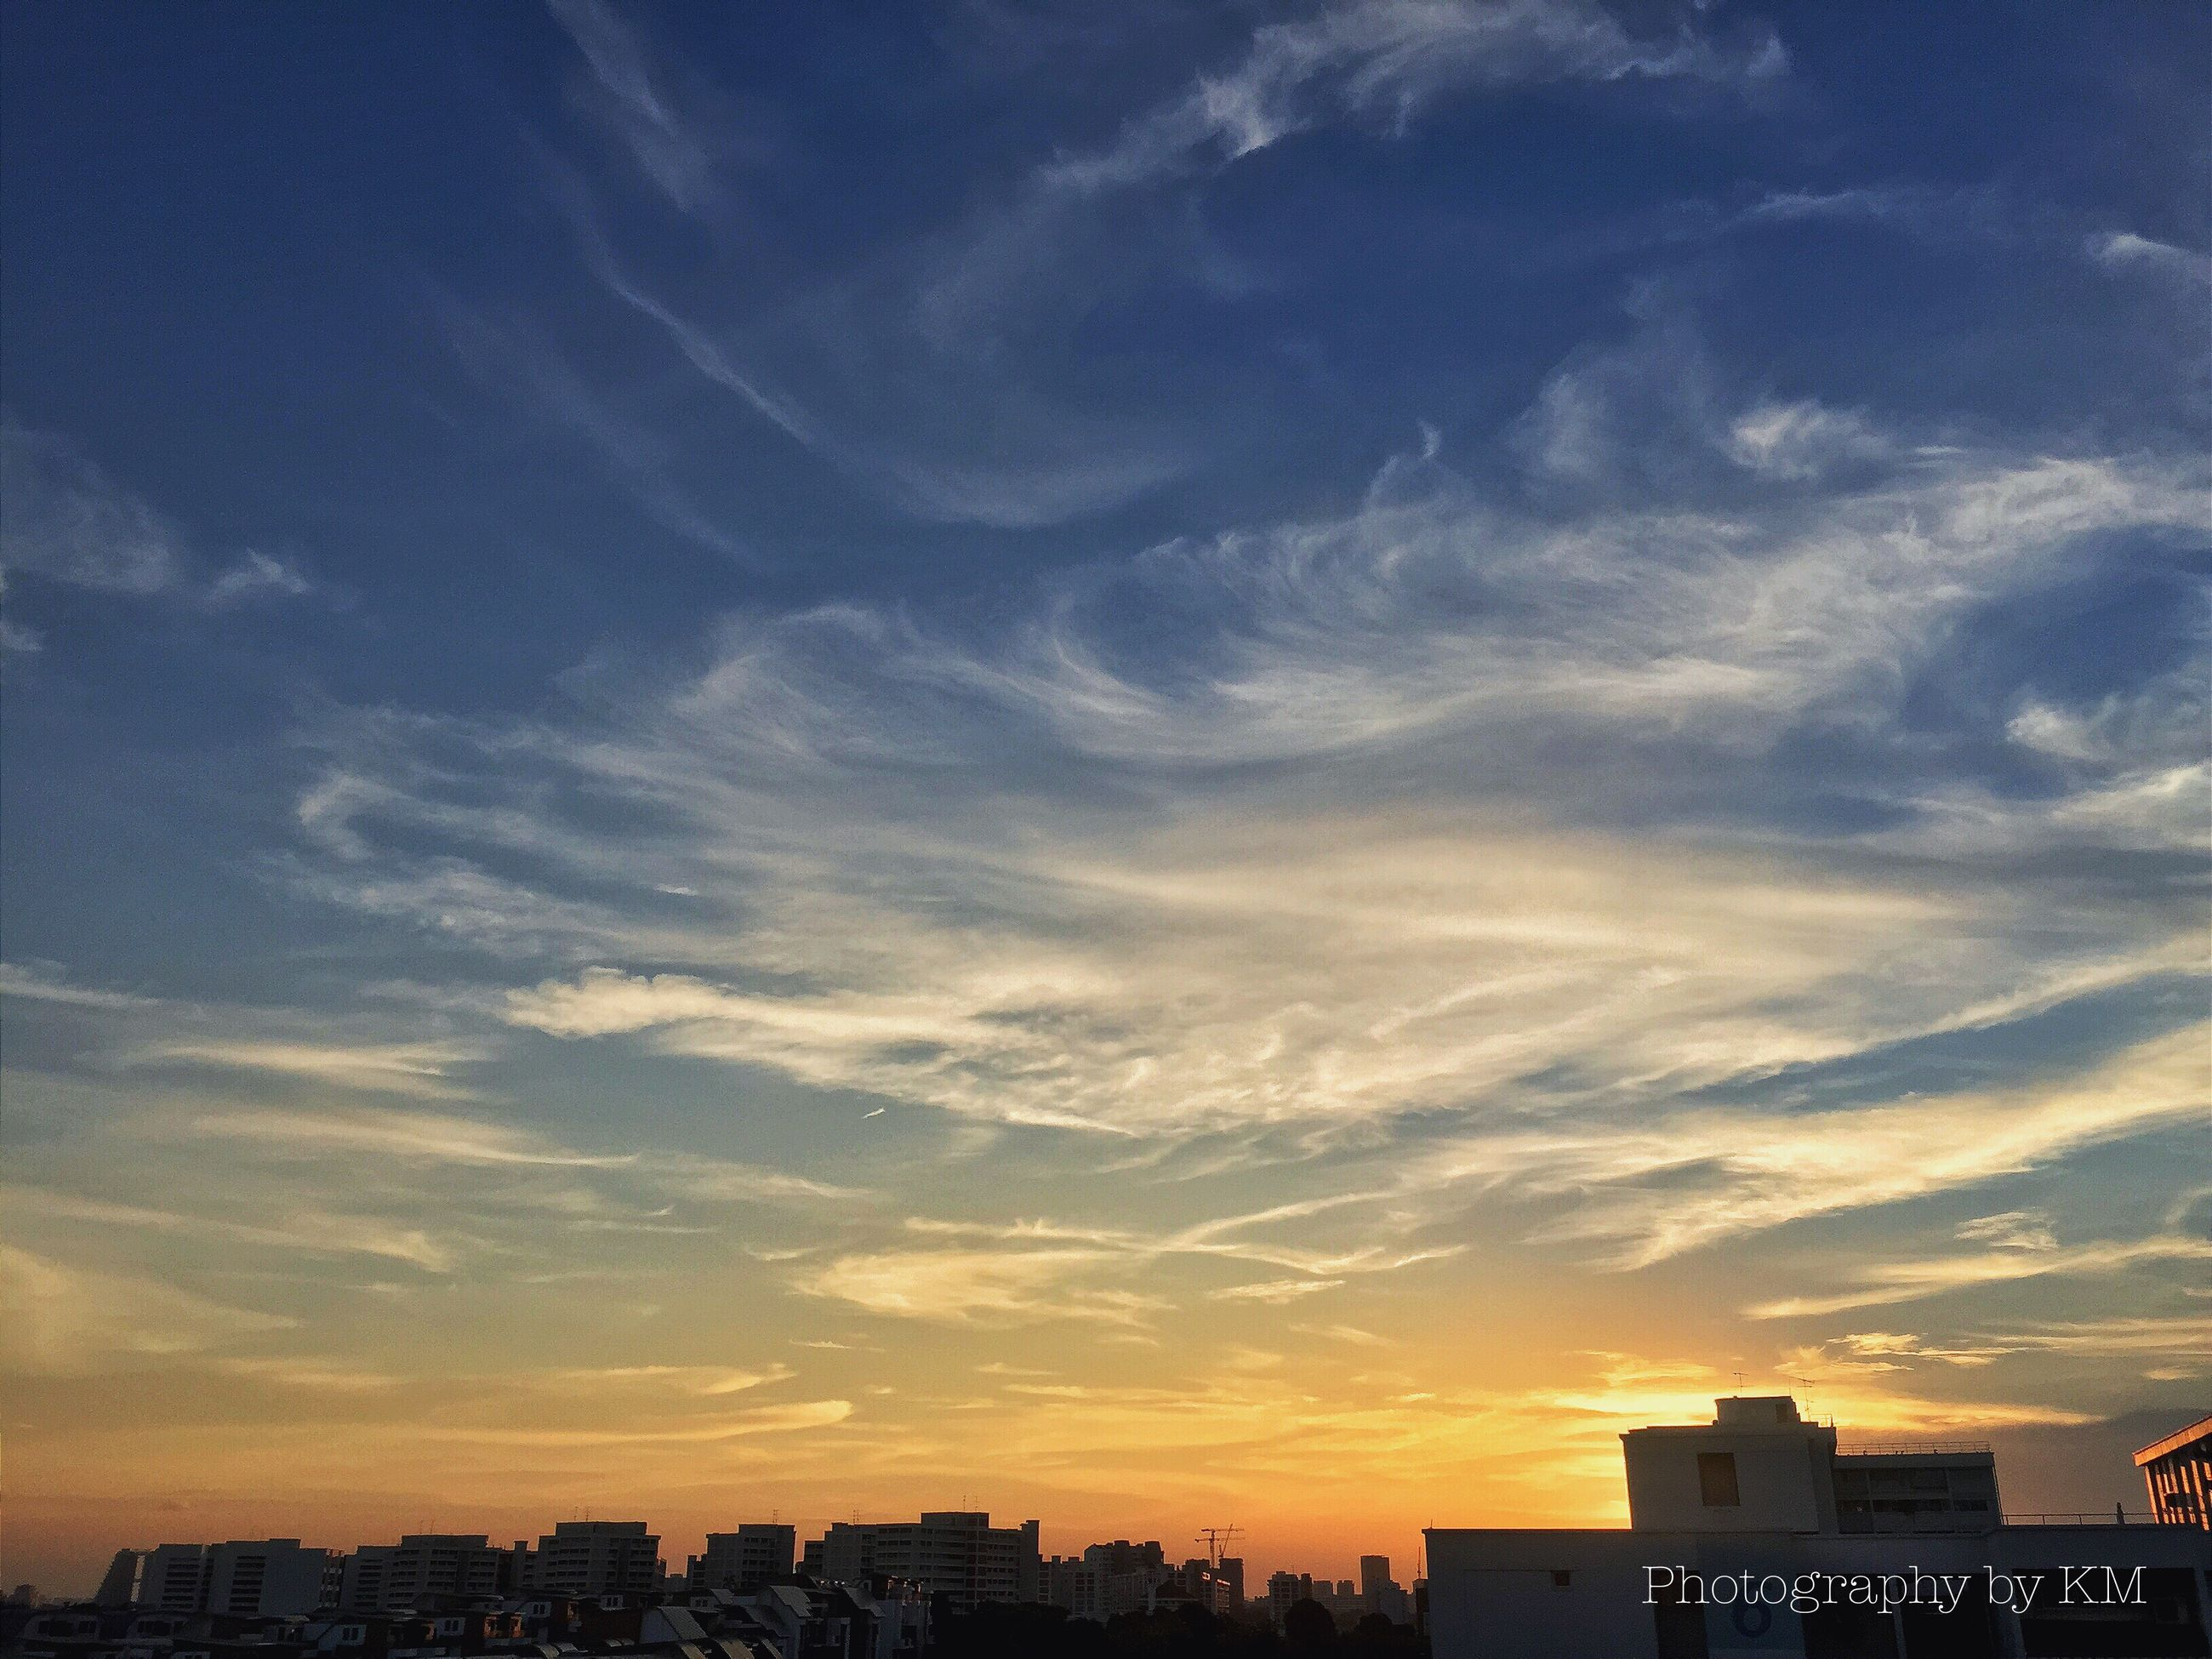 building exterior, architecture, built structure, sunset, city, sky, cityscape, cloud - sky, residential building, silhouette, residential district, residential structure, orange color, cloud, dusk, building, city life, outdoors, no people, scenics